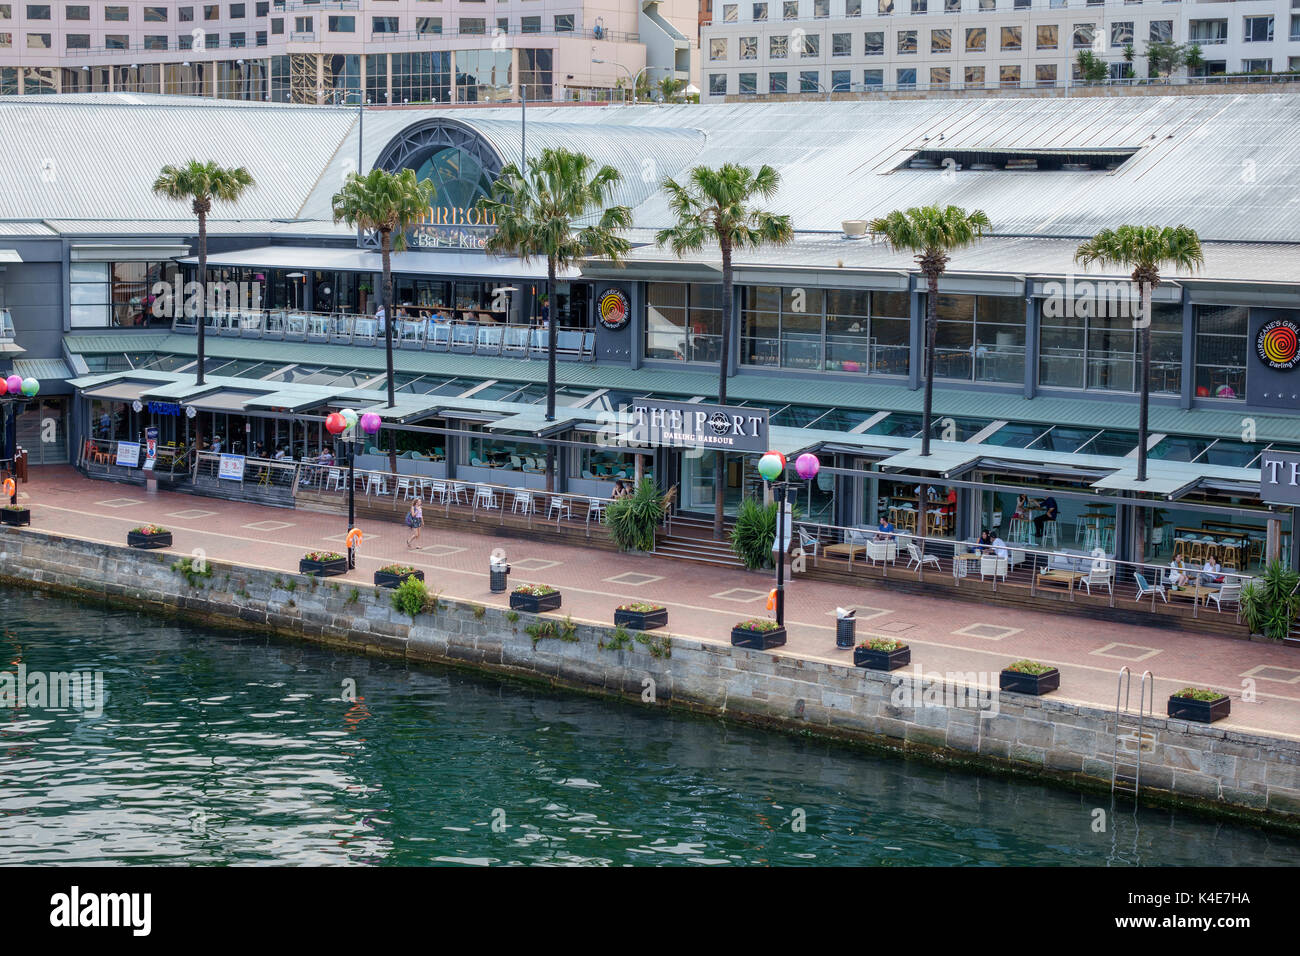 The Port At Darling Harbour Bars And Restaurants  And The Harbourside Shopping Centre By The Water Front Sydney Australia - Stock Image